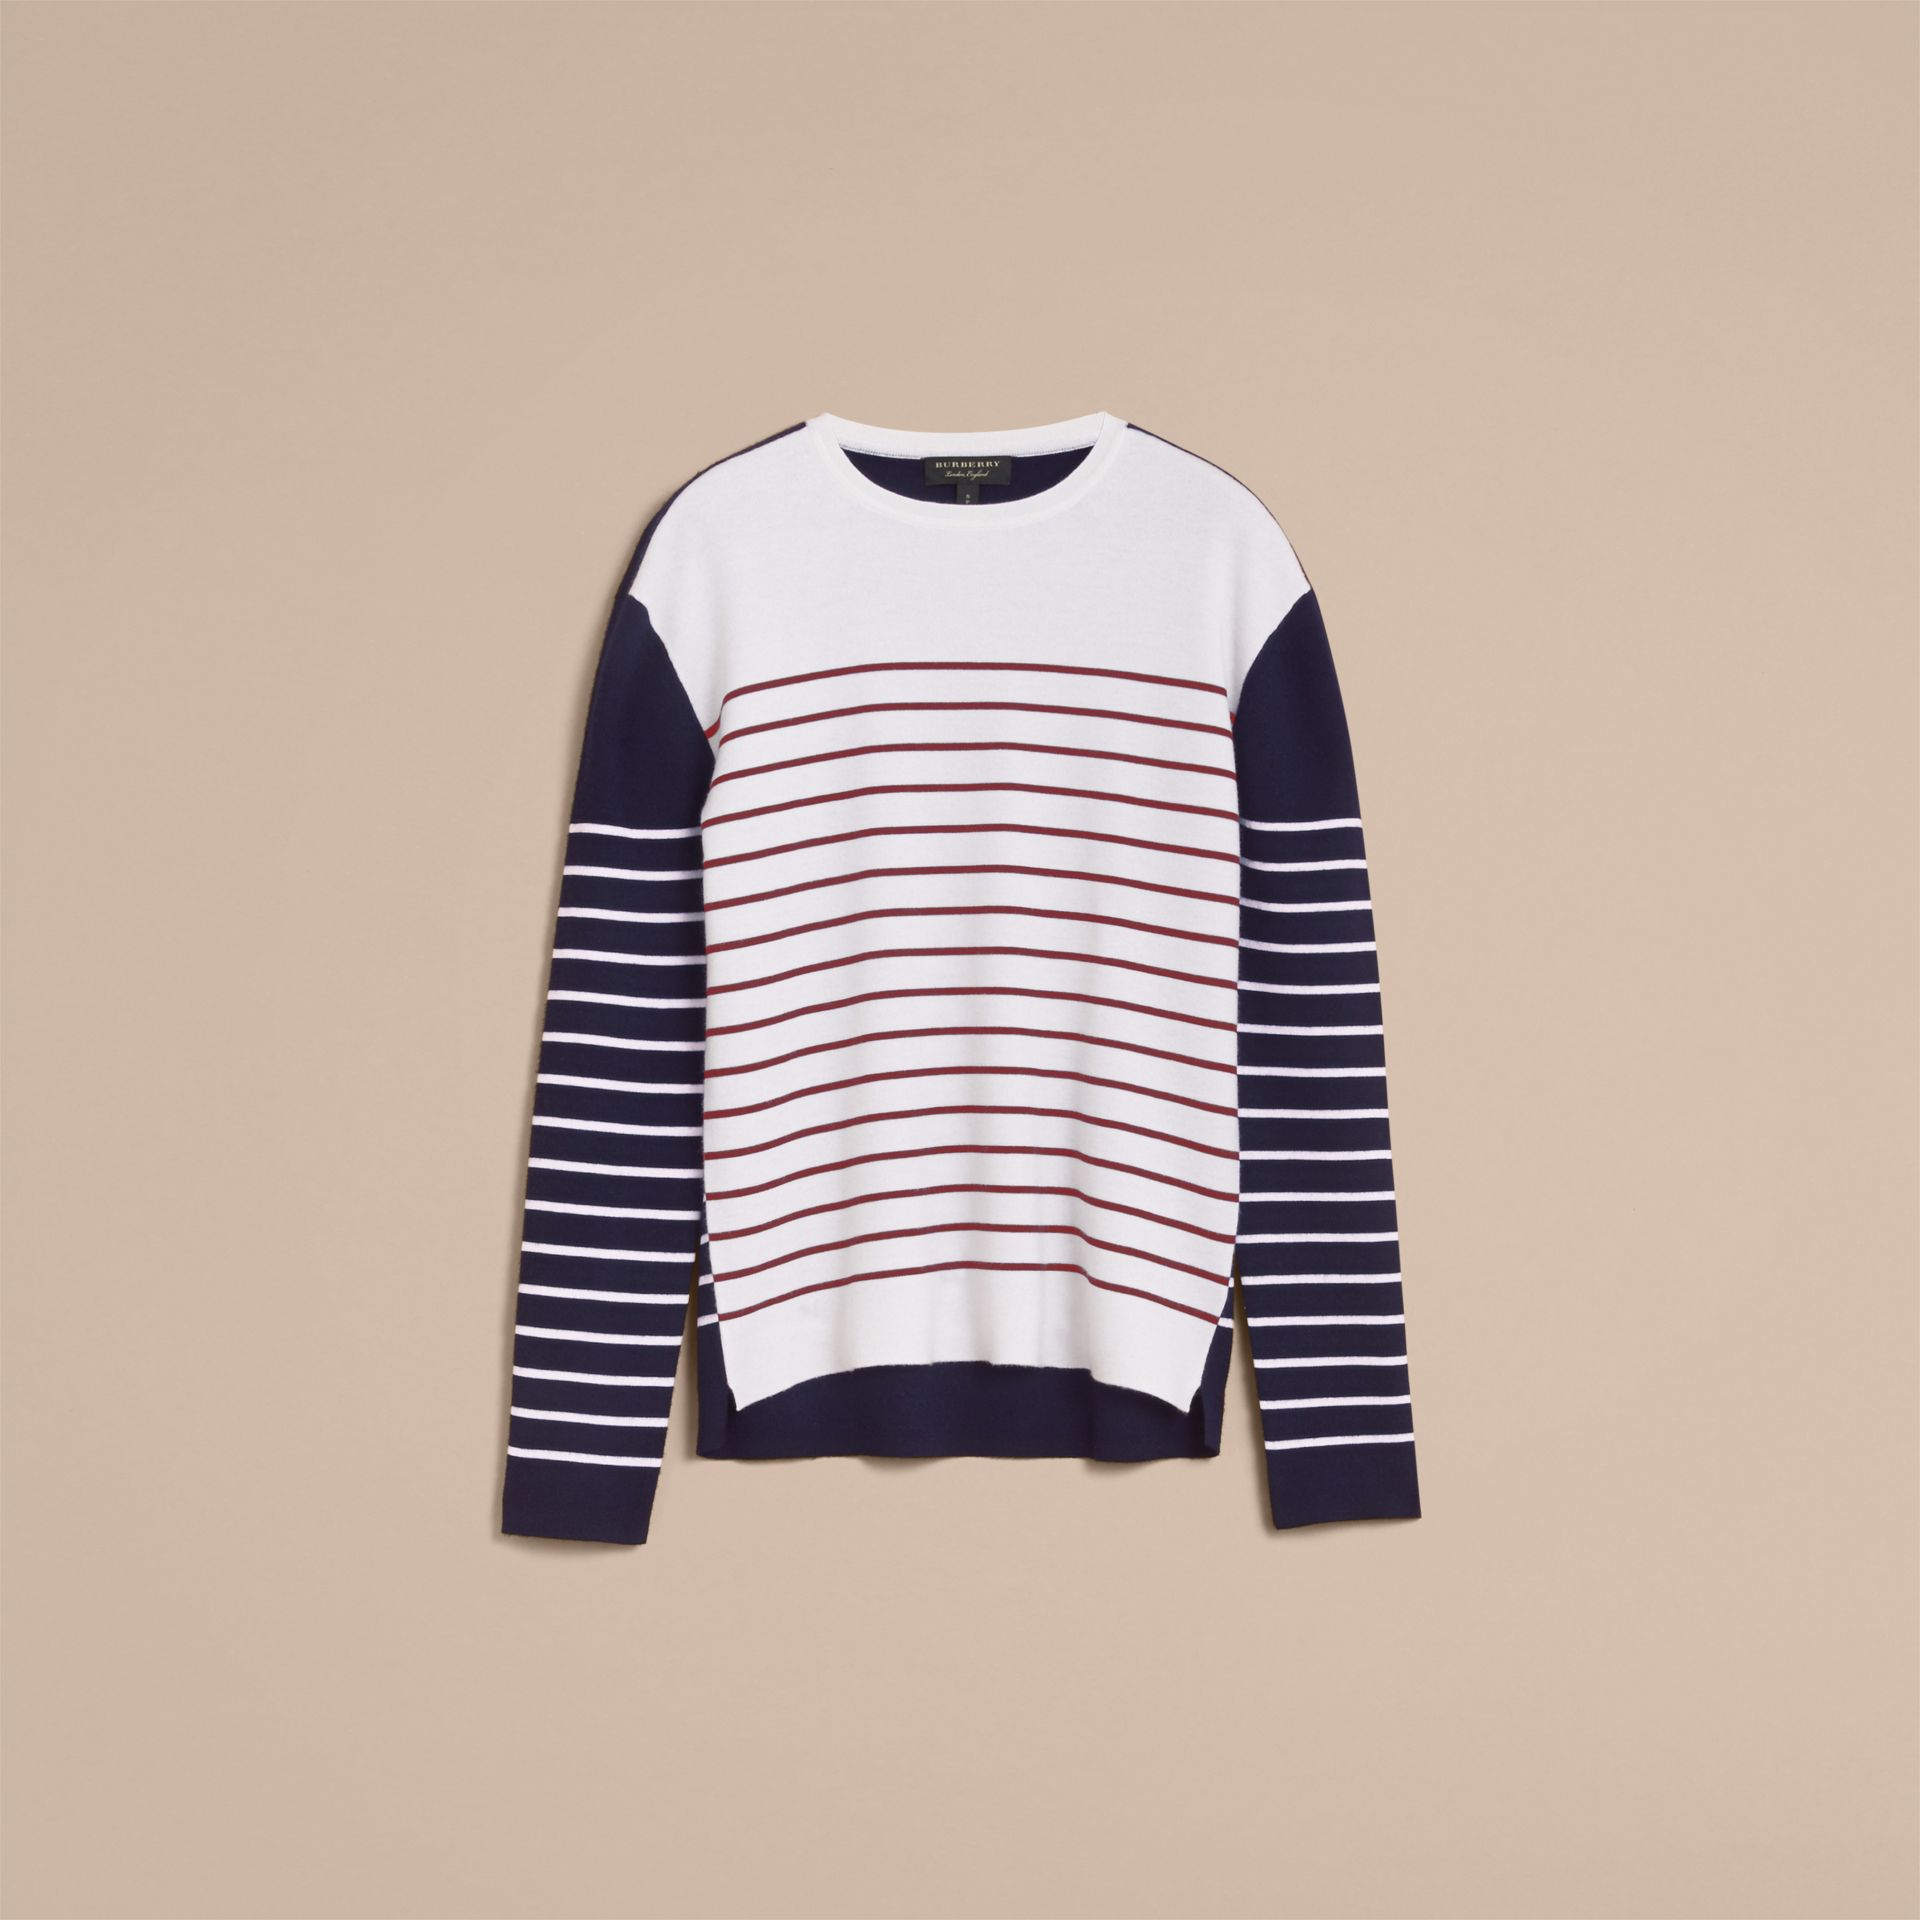 Contrast Stripe Cashmere Blend Sweater - Men | Burberry - gallery image 4